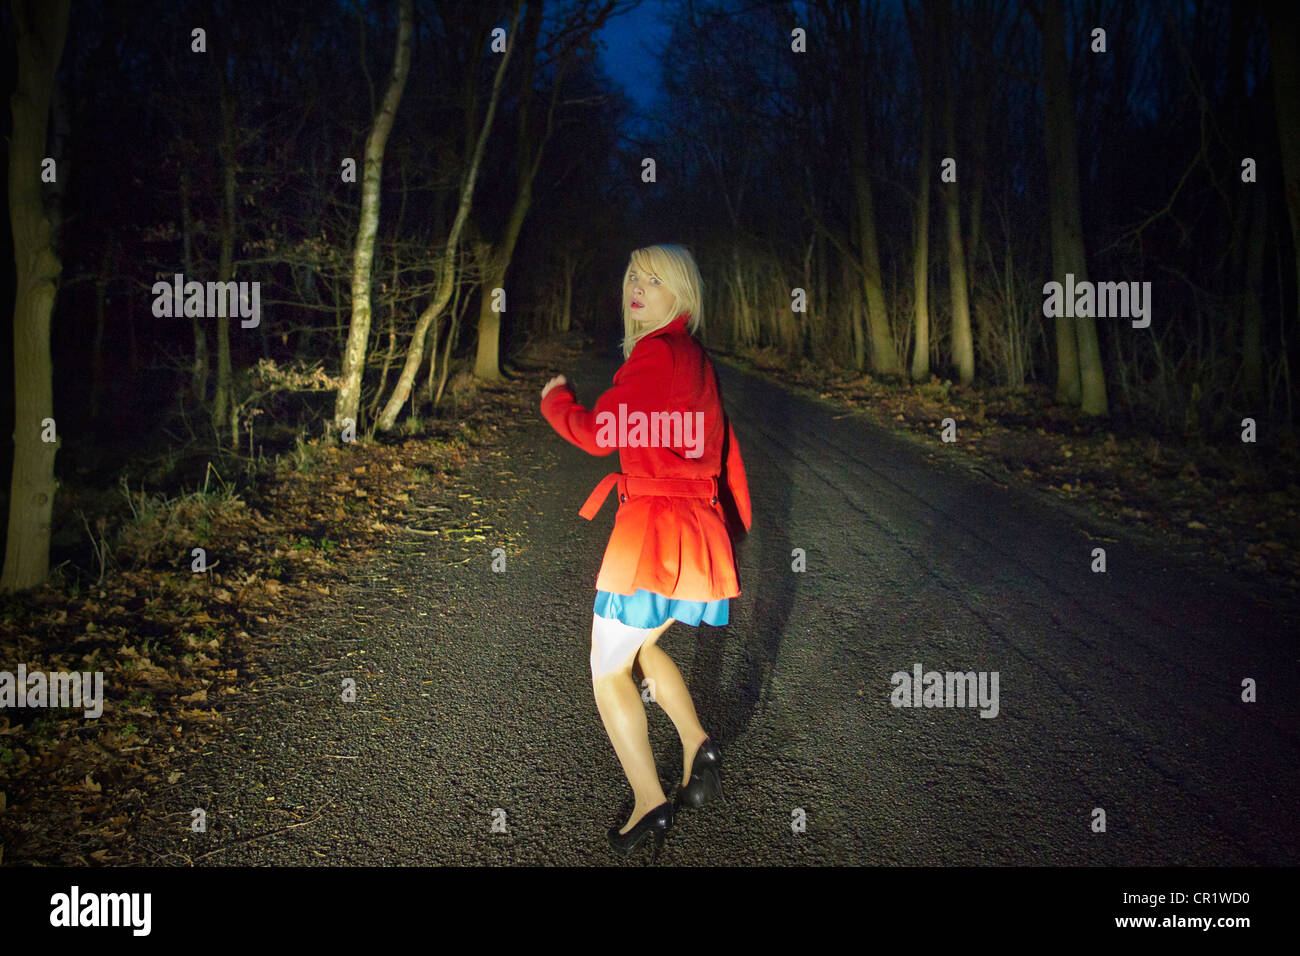 Woman running in fear in woods at night - Stock Image